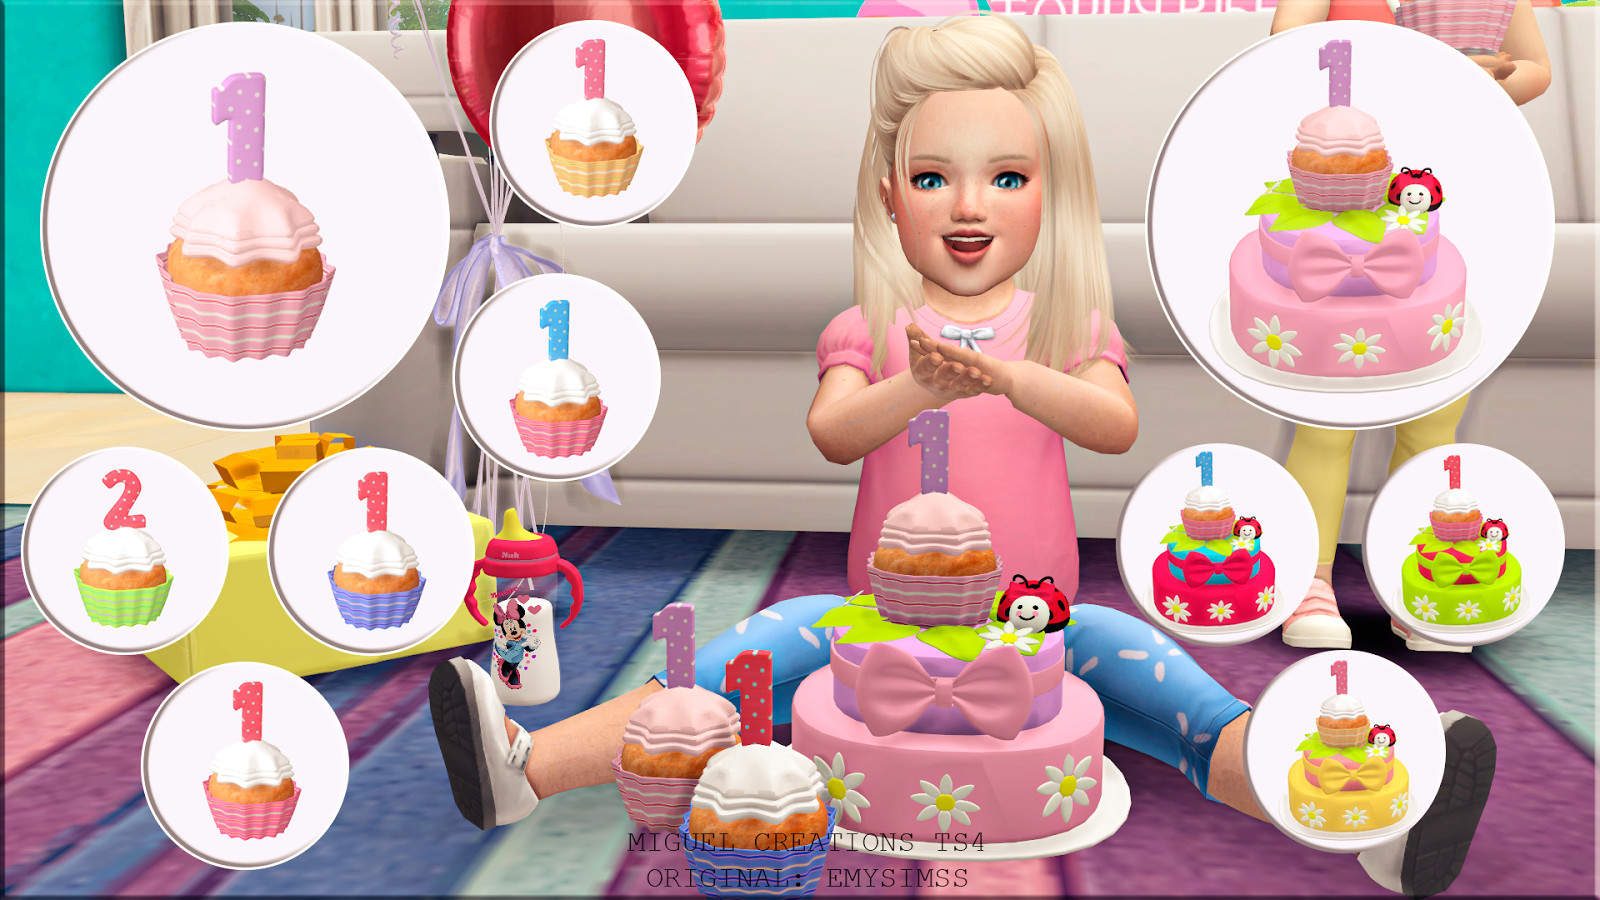 Best ideas about Sims 4 Birthday Party . Save or Pin Miguel Creations TS4 Girl´s Birthday Now.